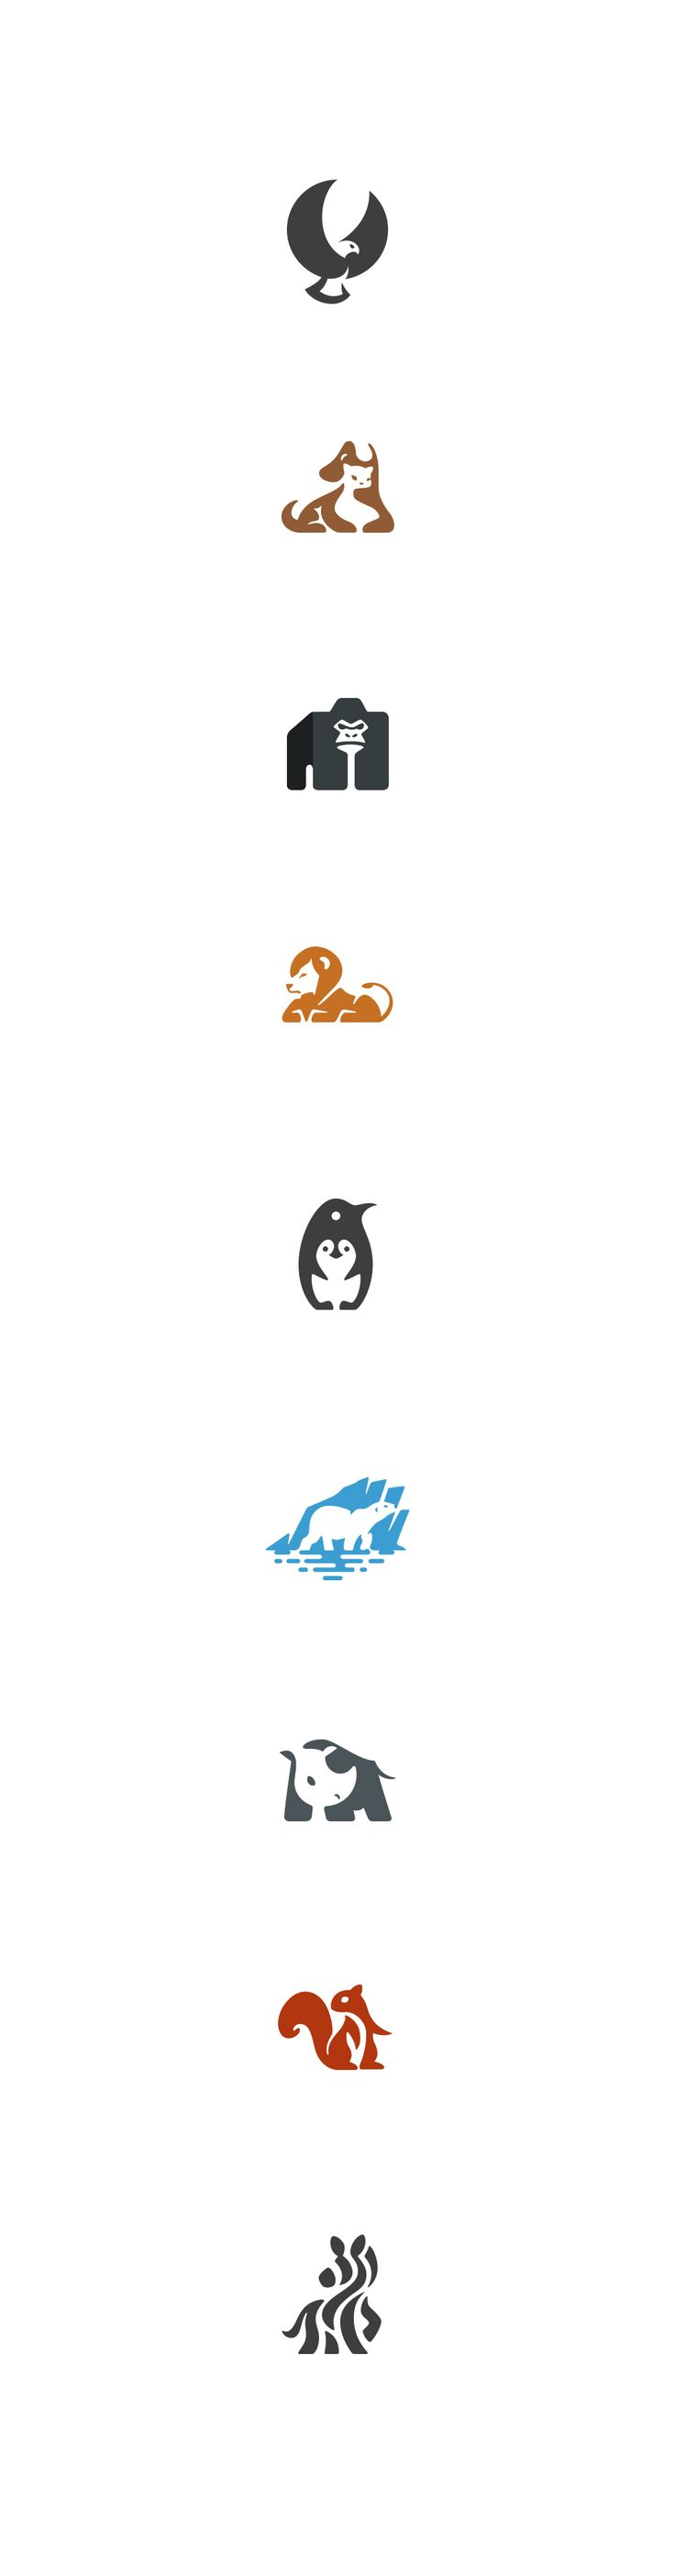 Fantastic negative space illustrations! These are all so clever.                                                                                                                                                                                 More